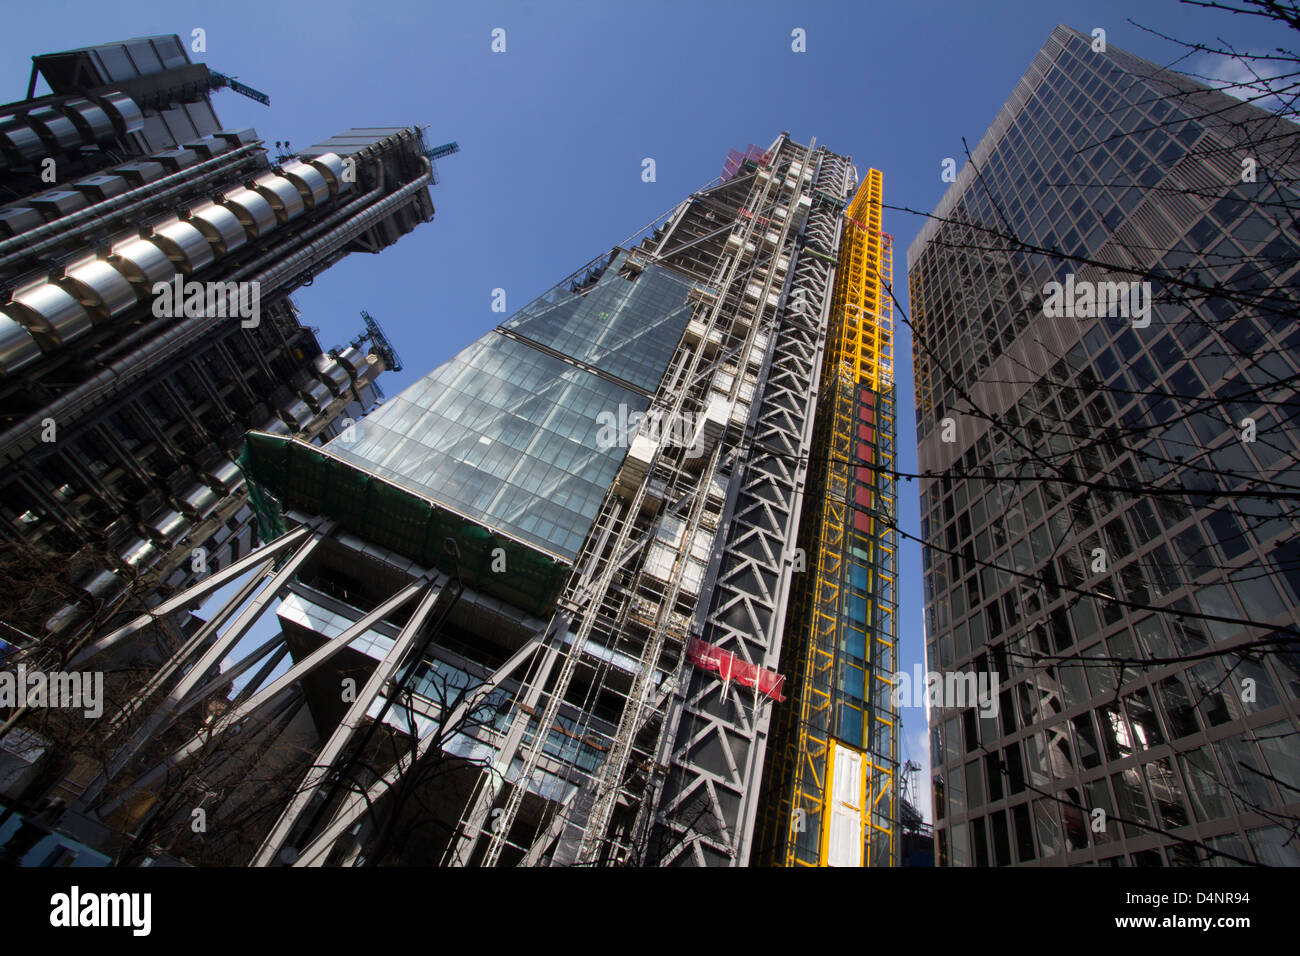 The Leadenhall building (centre) which is to become the Aon centre 122 Leadenhall Street The cheesegrater - Stock Image